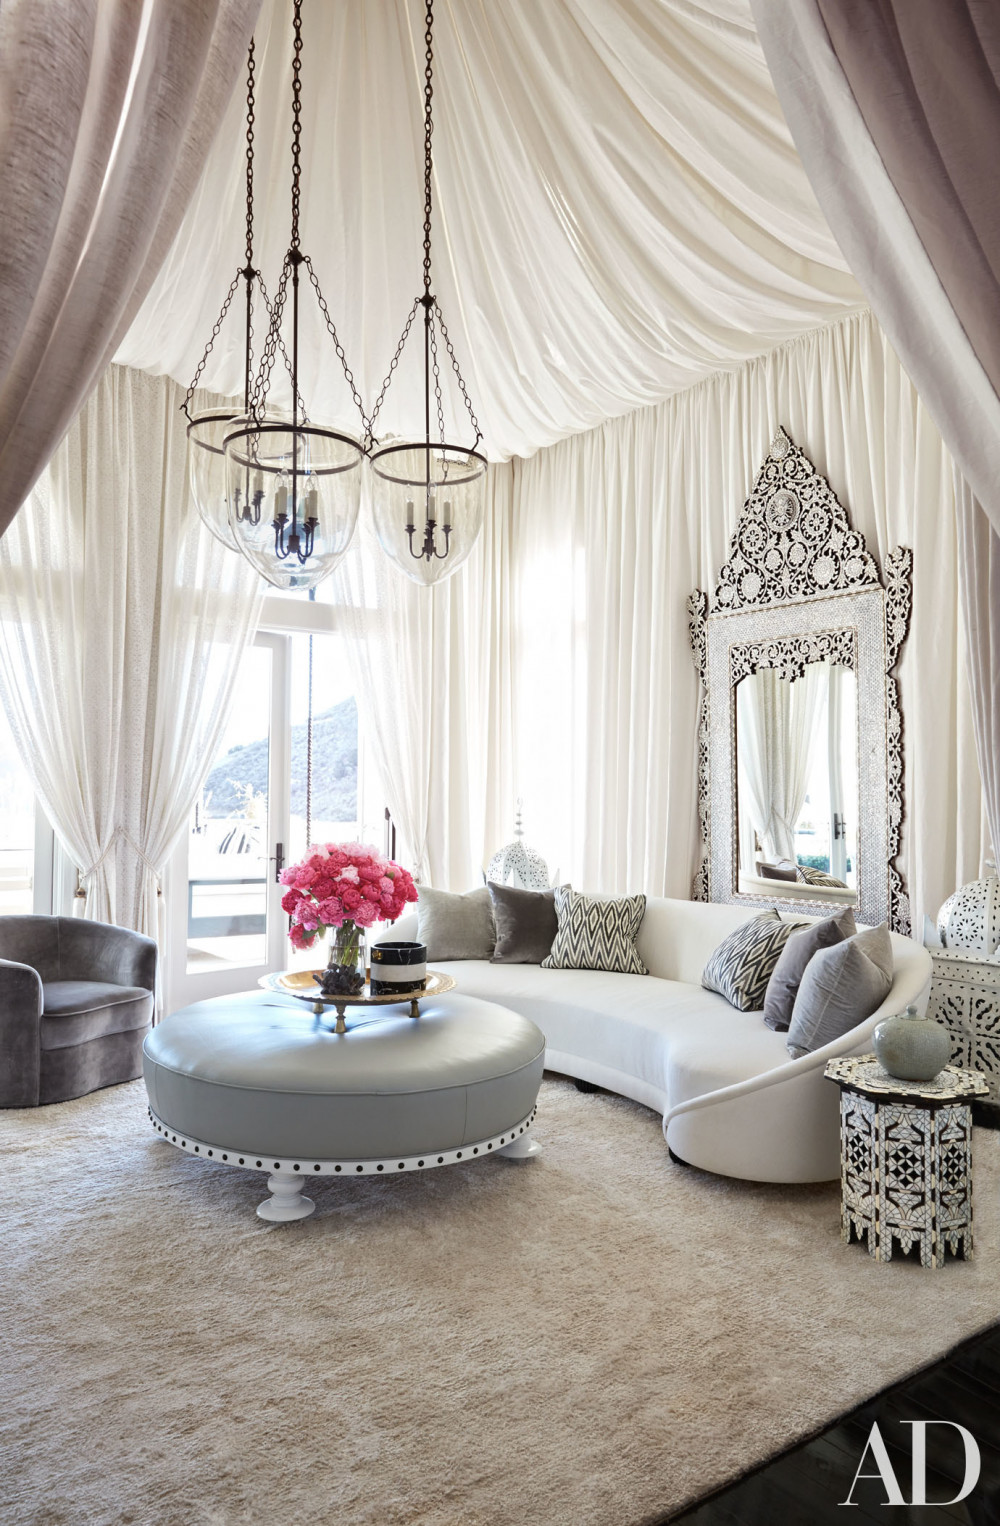 A Peek Inside Khlo and Kourtney Kardashians GORGEOUS Houses in the New Architectural Digest